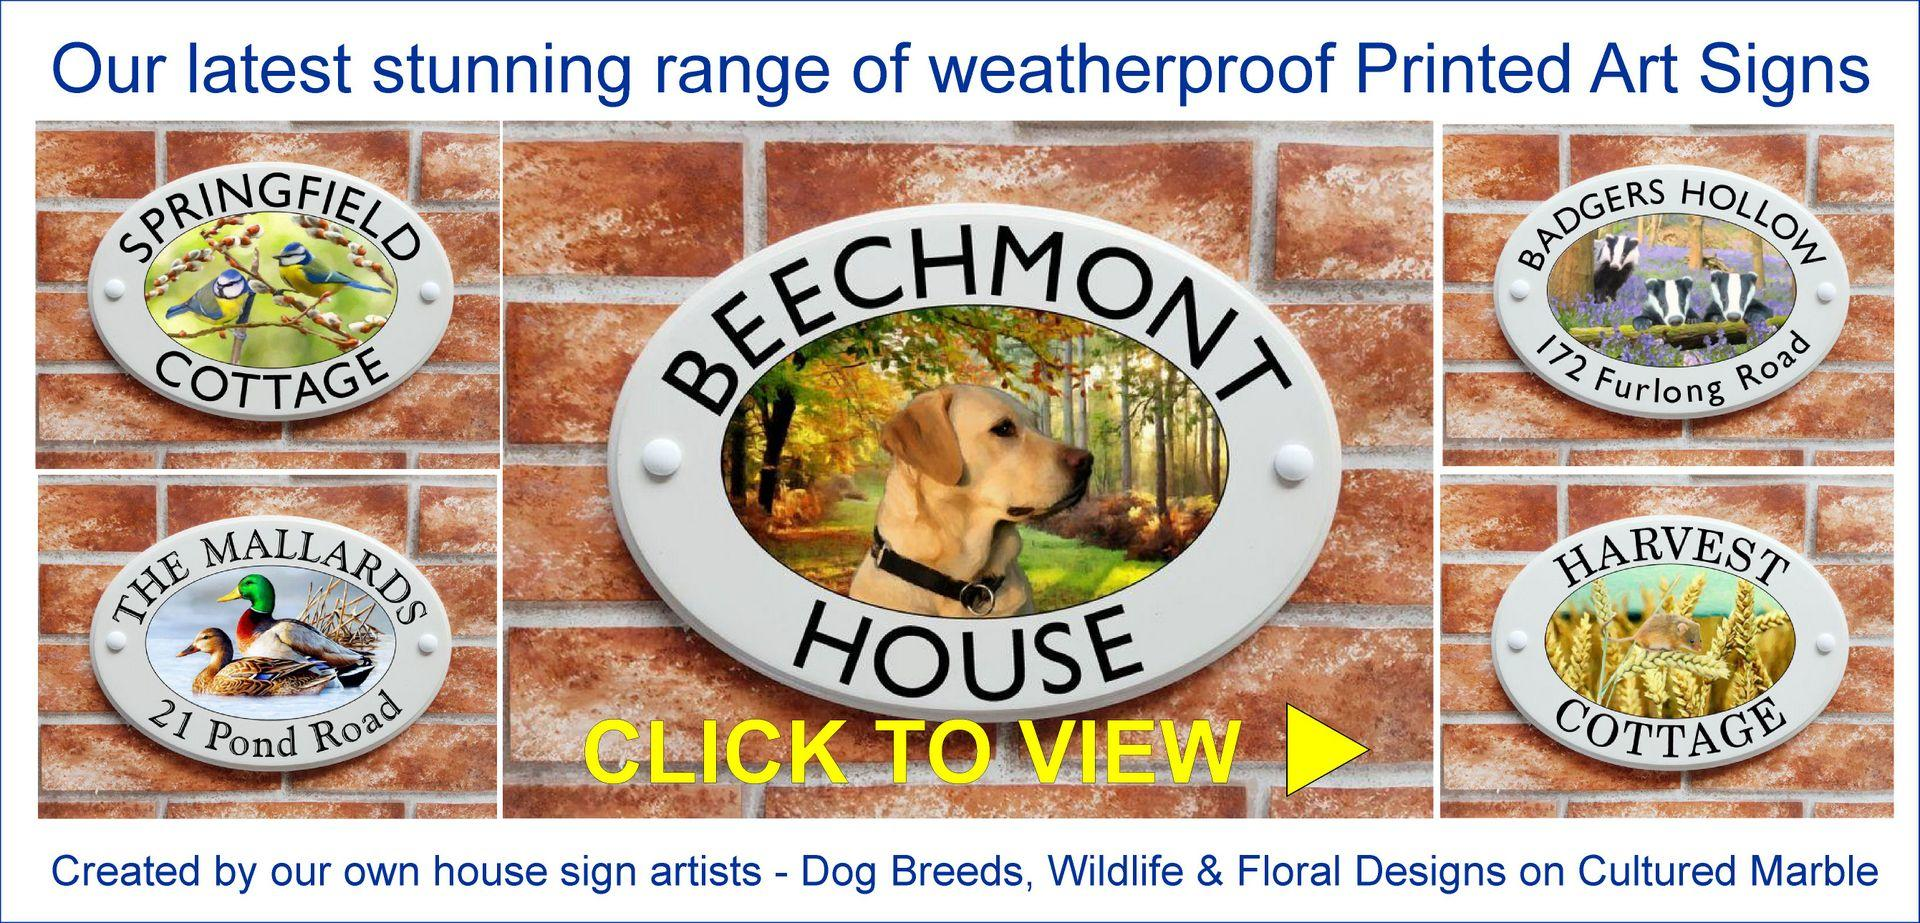 House signs with Art pictures of dogs, wildlife, flower designs and motifs